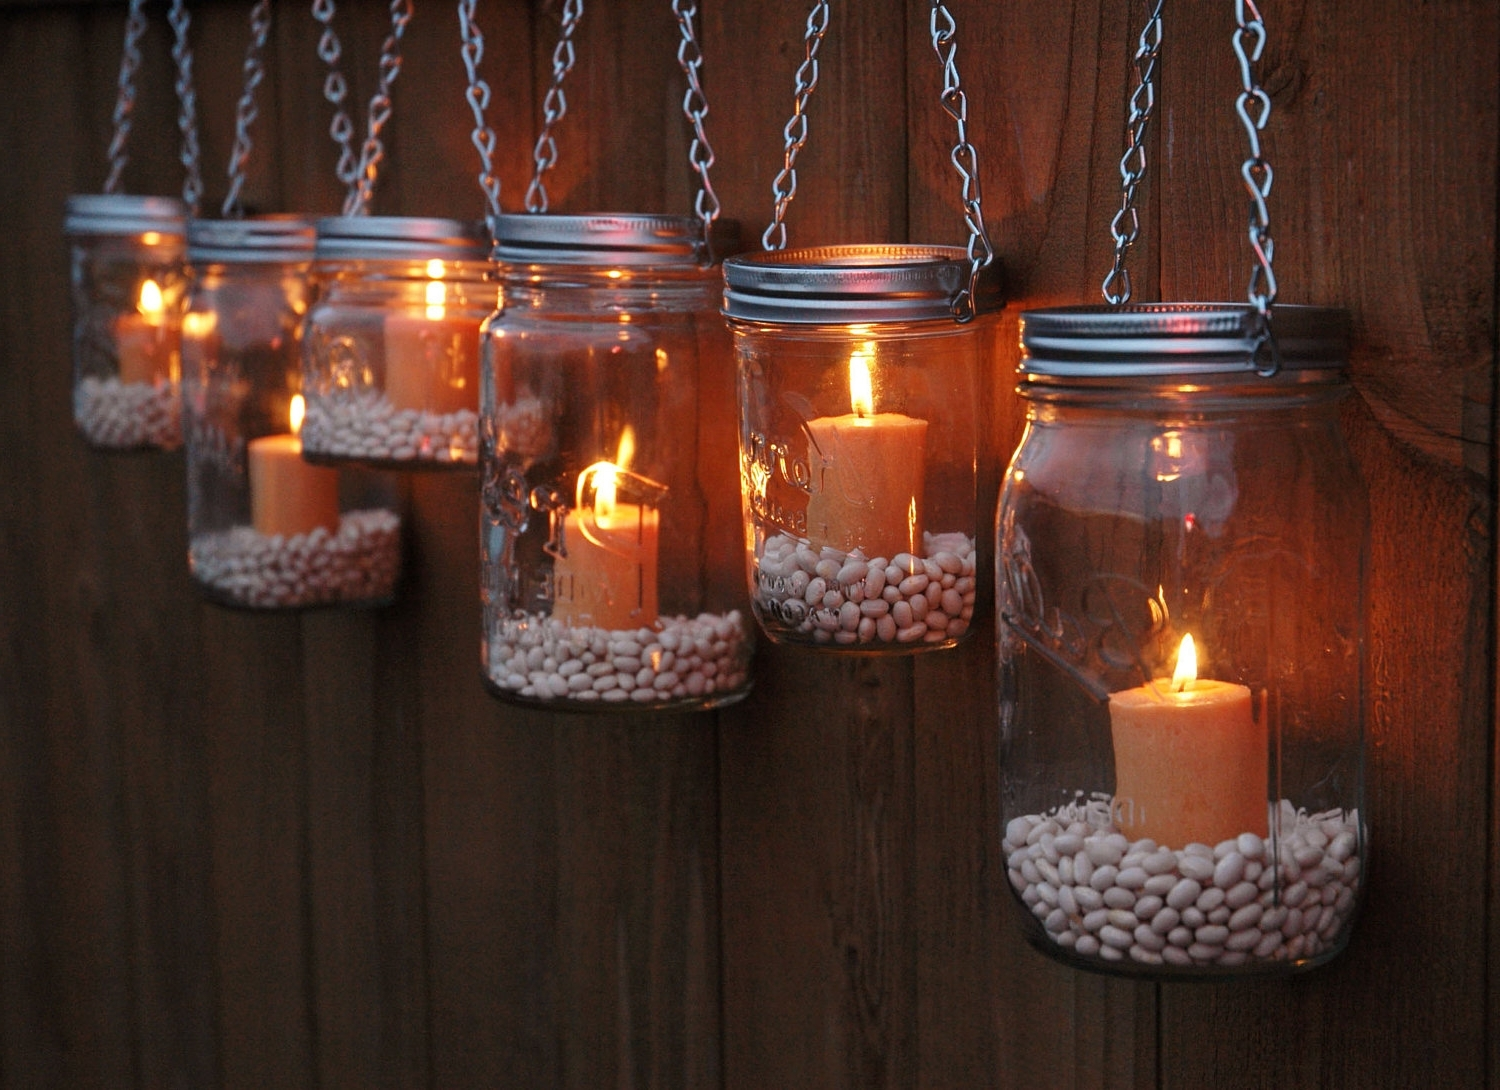 2018 Diy : Set Mini Mason Jar Mugs With Tea Lights Outdoor Lighting Solar Pertaining To Outdoor Hanging Tea Lights (View 3 of 20)